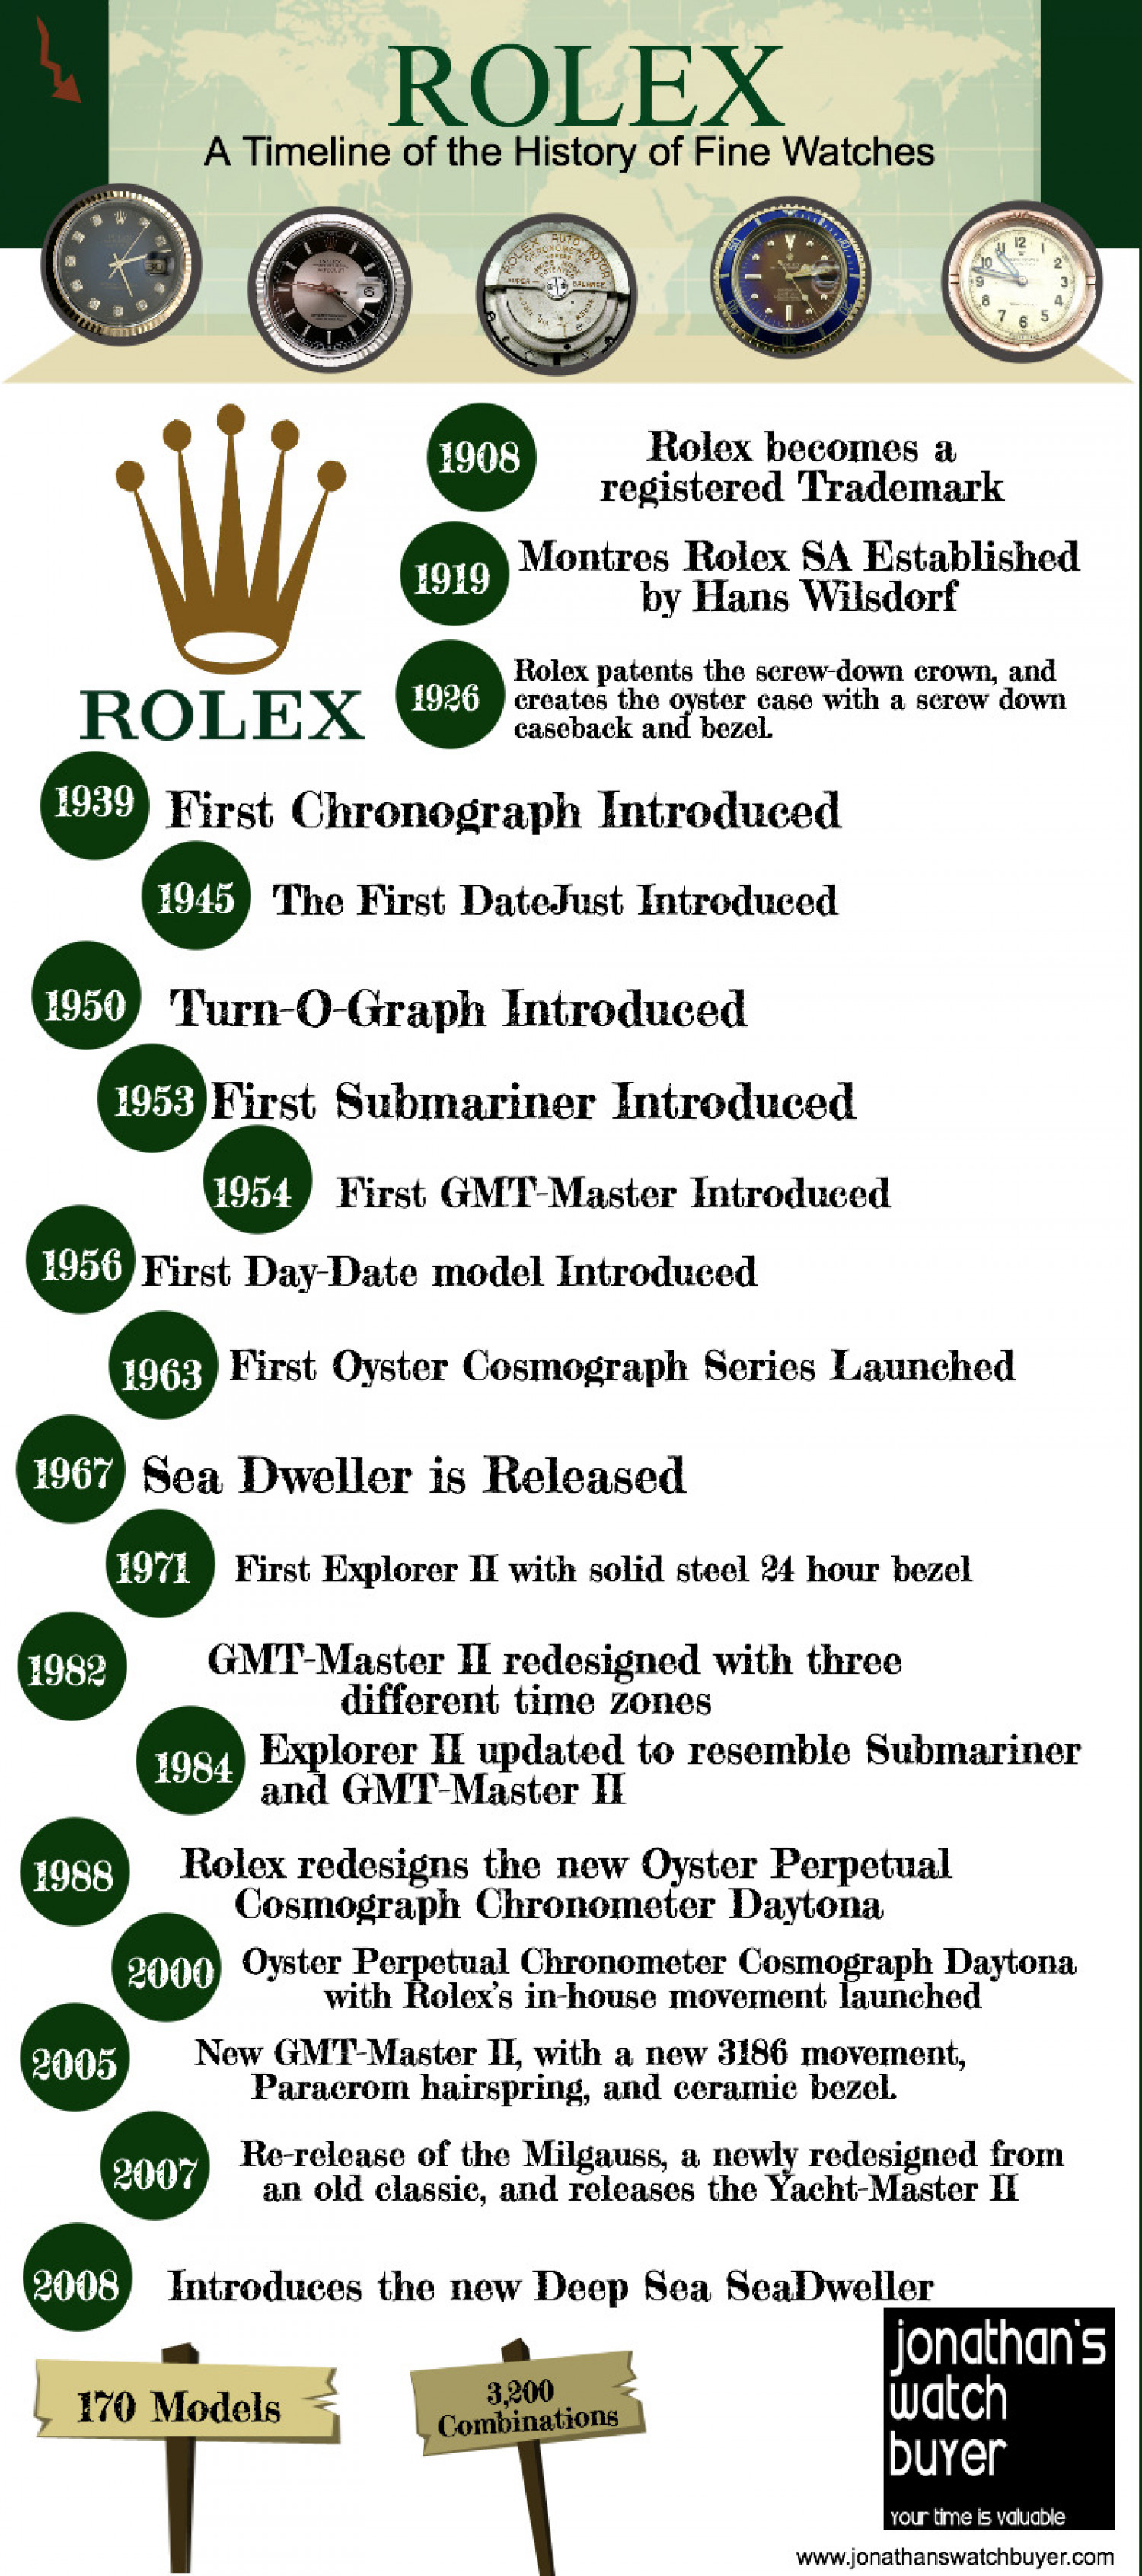 Rolex - A Timeline of Fine Watches Infographic